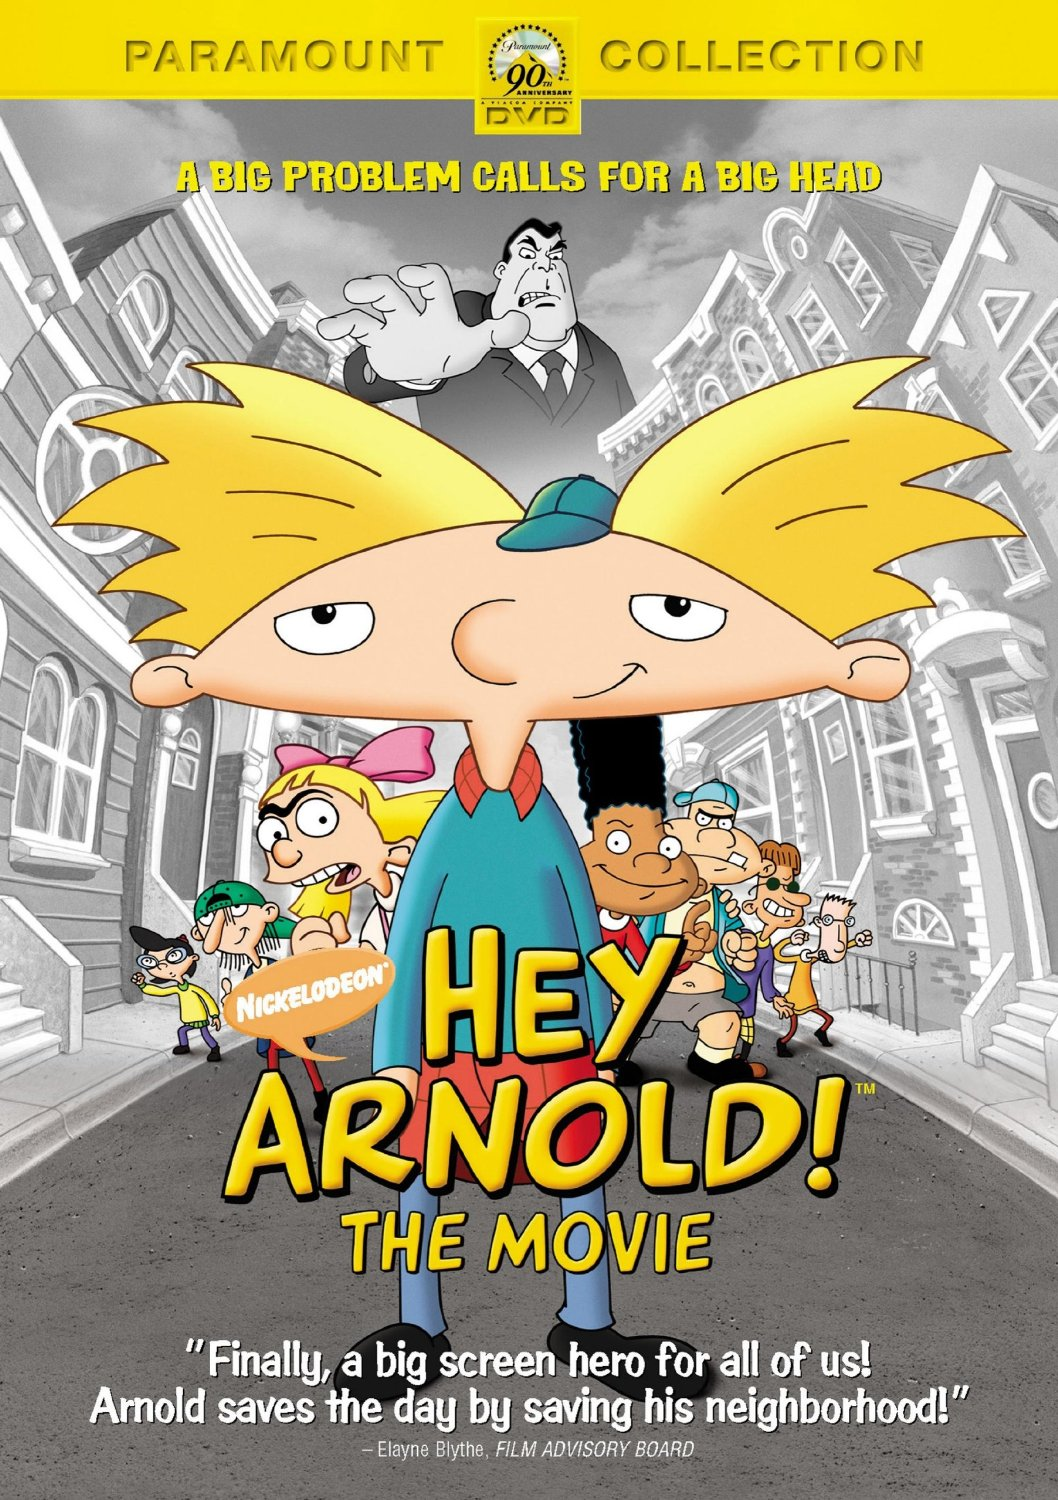 Hey Arnold! videography